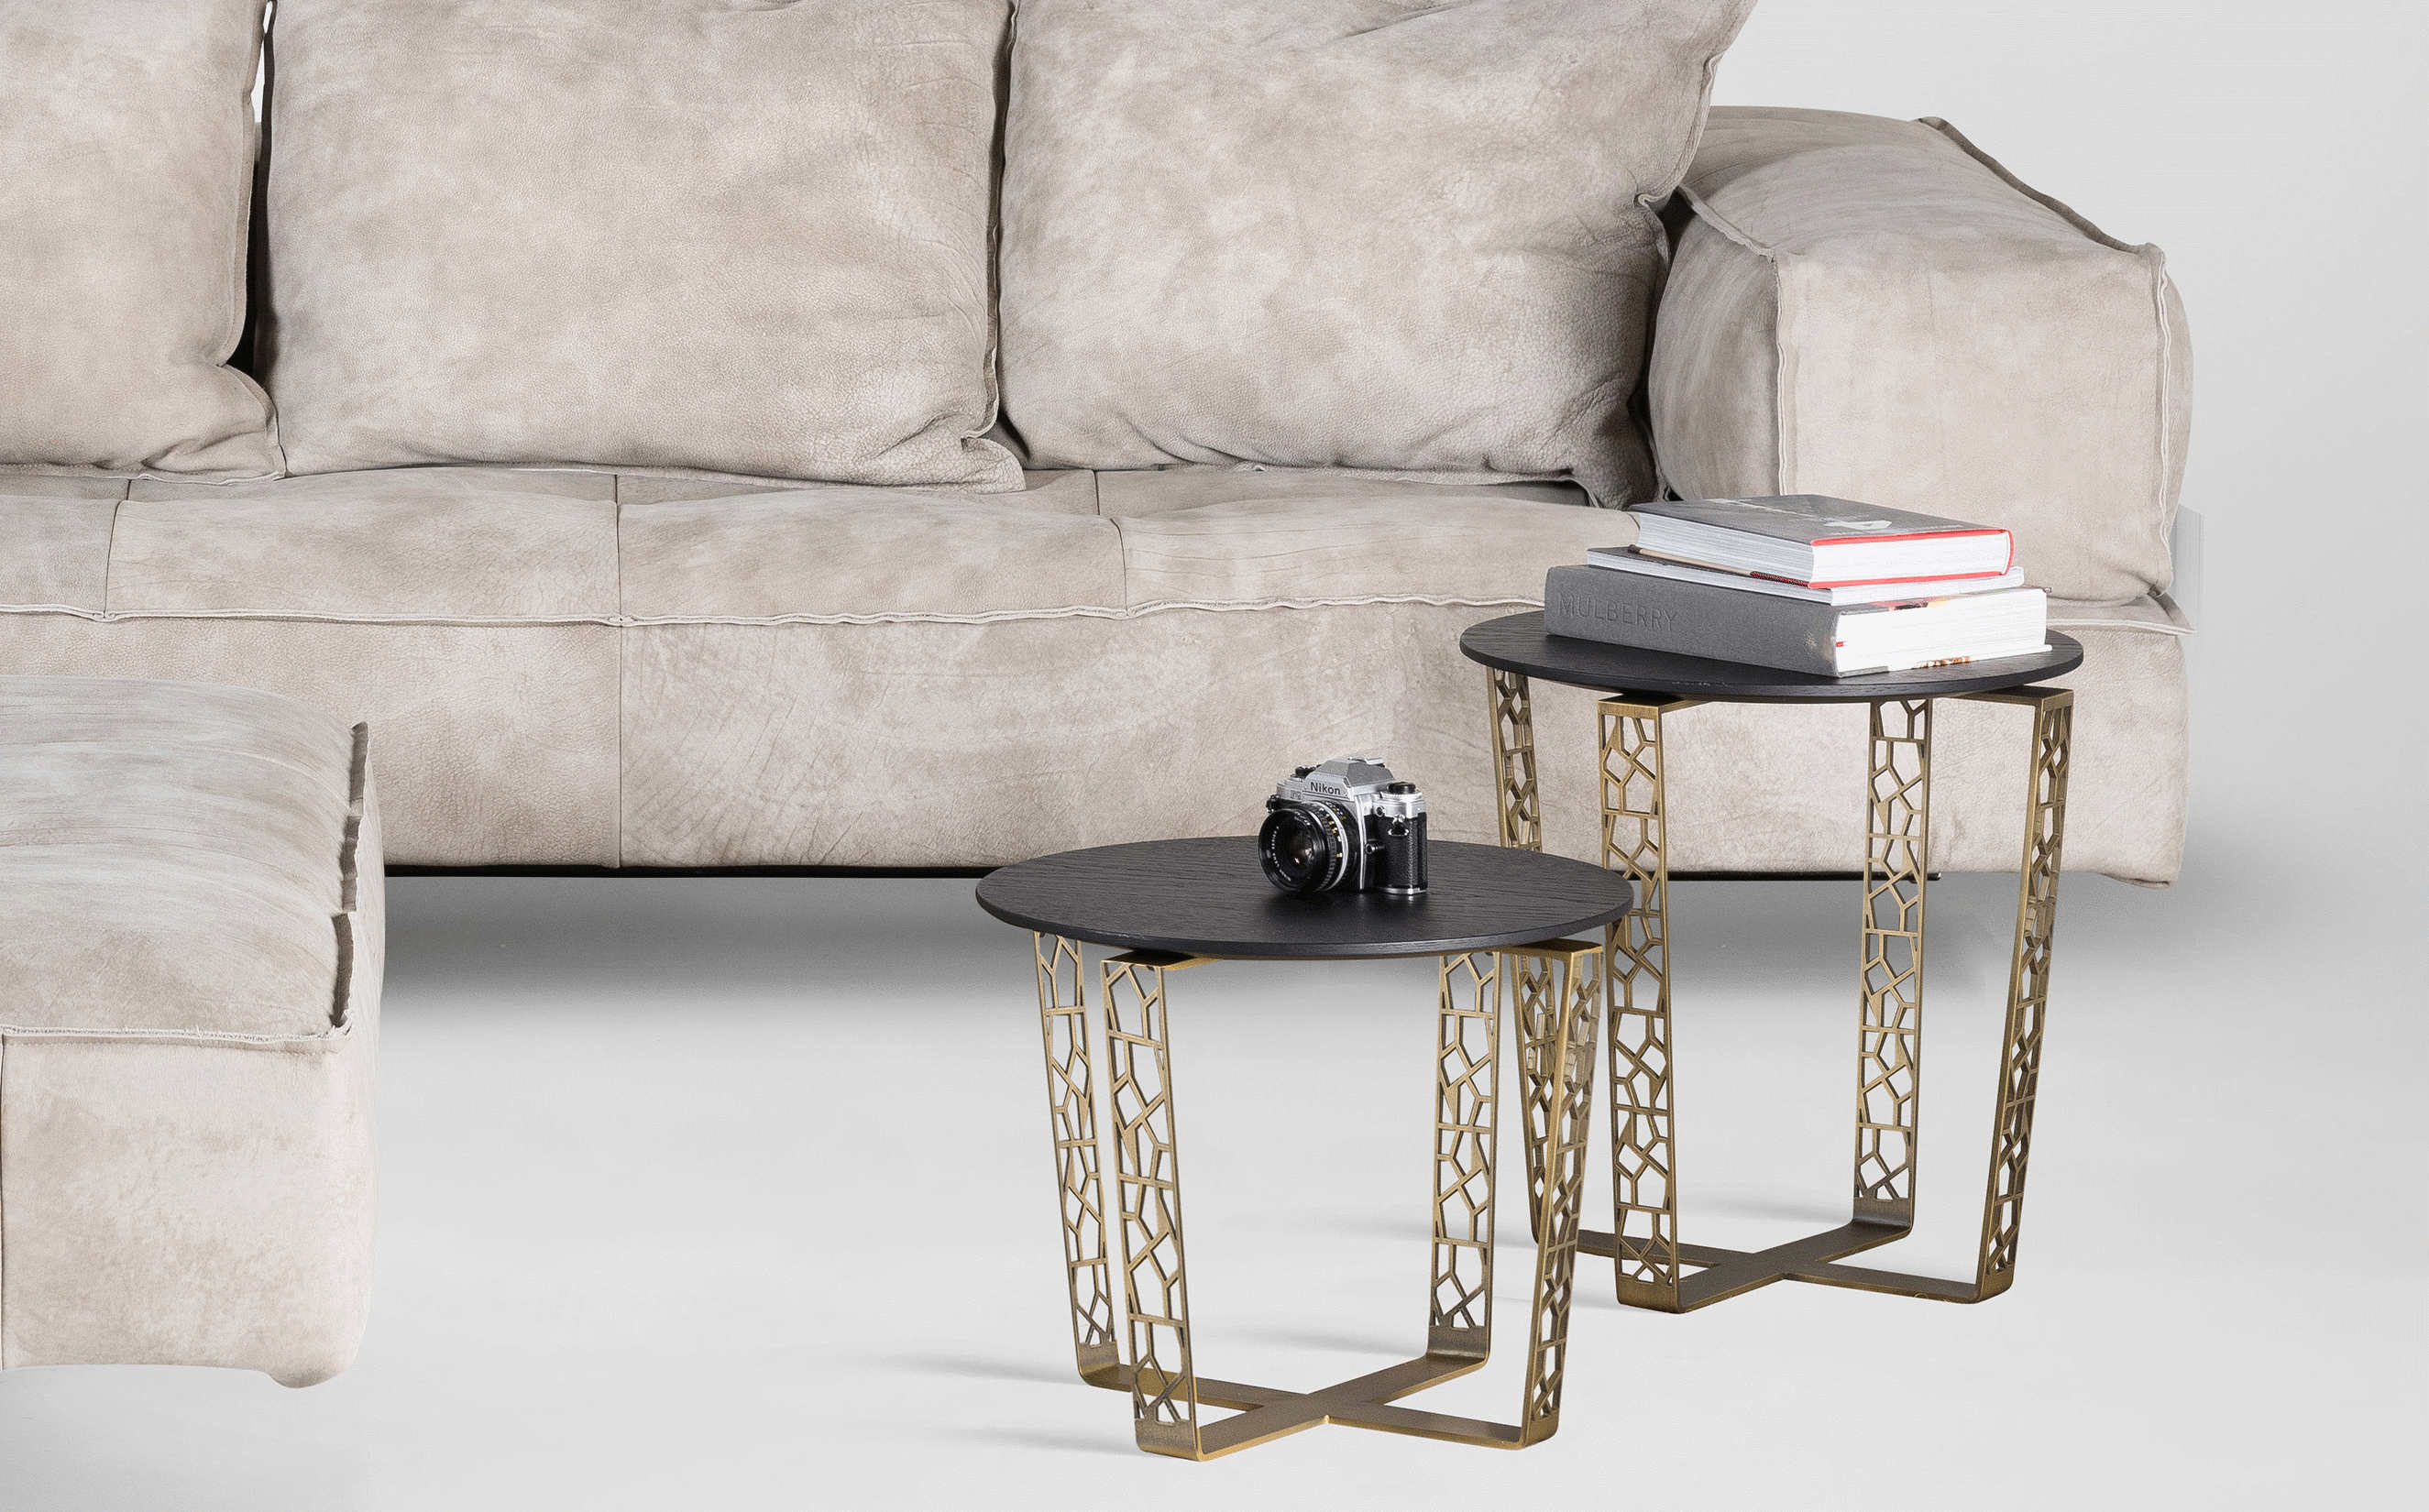 ARABESQUE Coffee table by Albedo Design